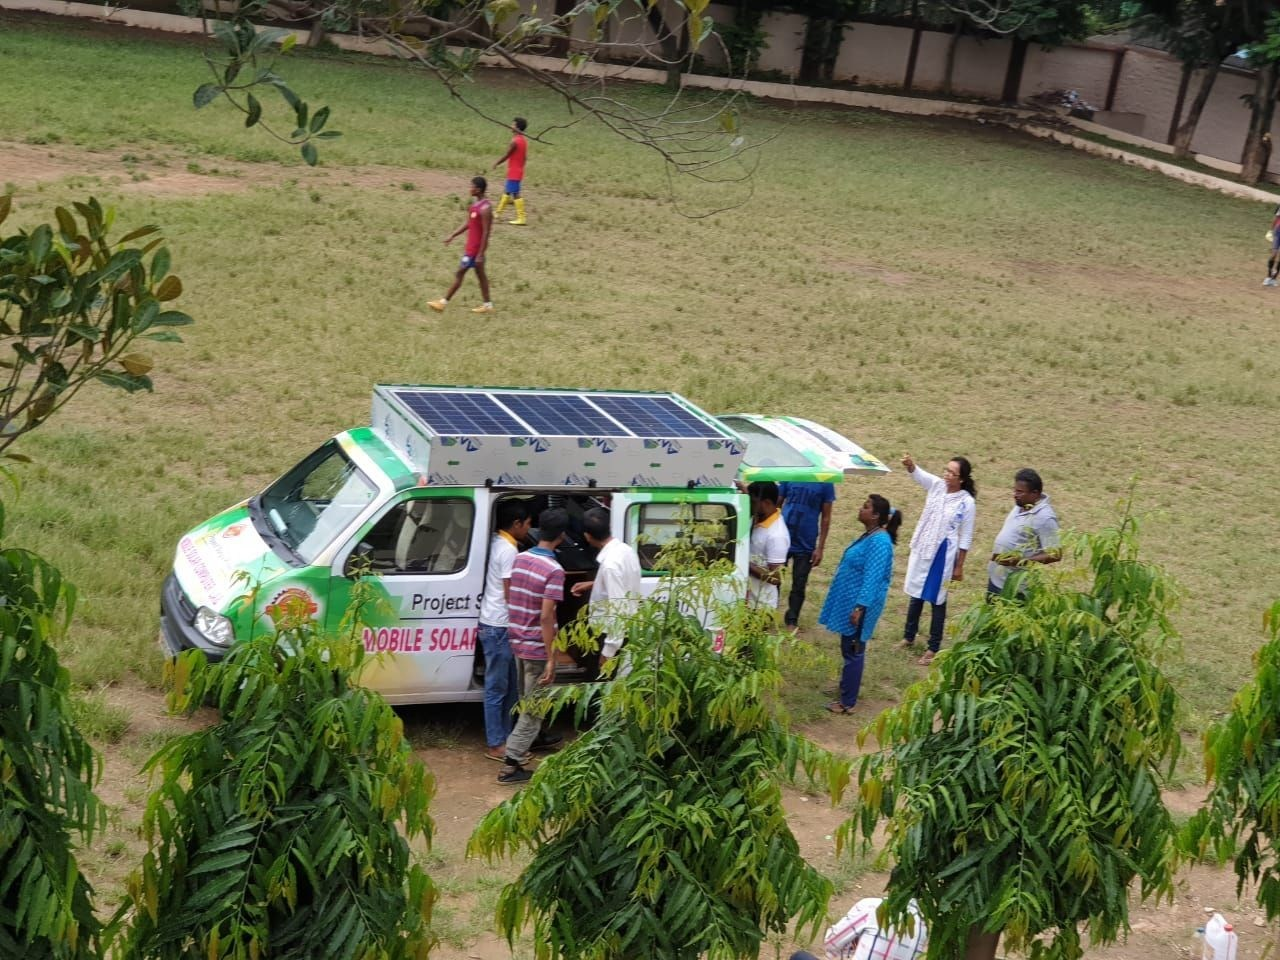 The van has the energy capacity to power five laptops and one demo computer, while also offering wi-fi internet. Image: Edimpact